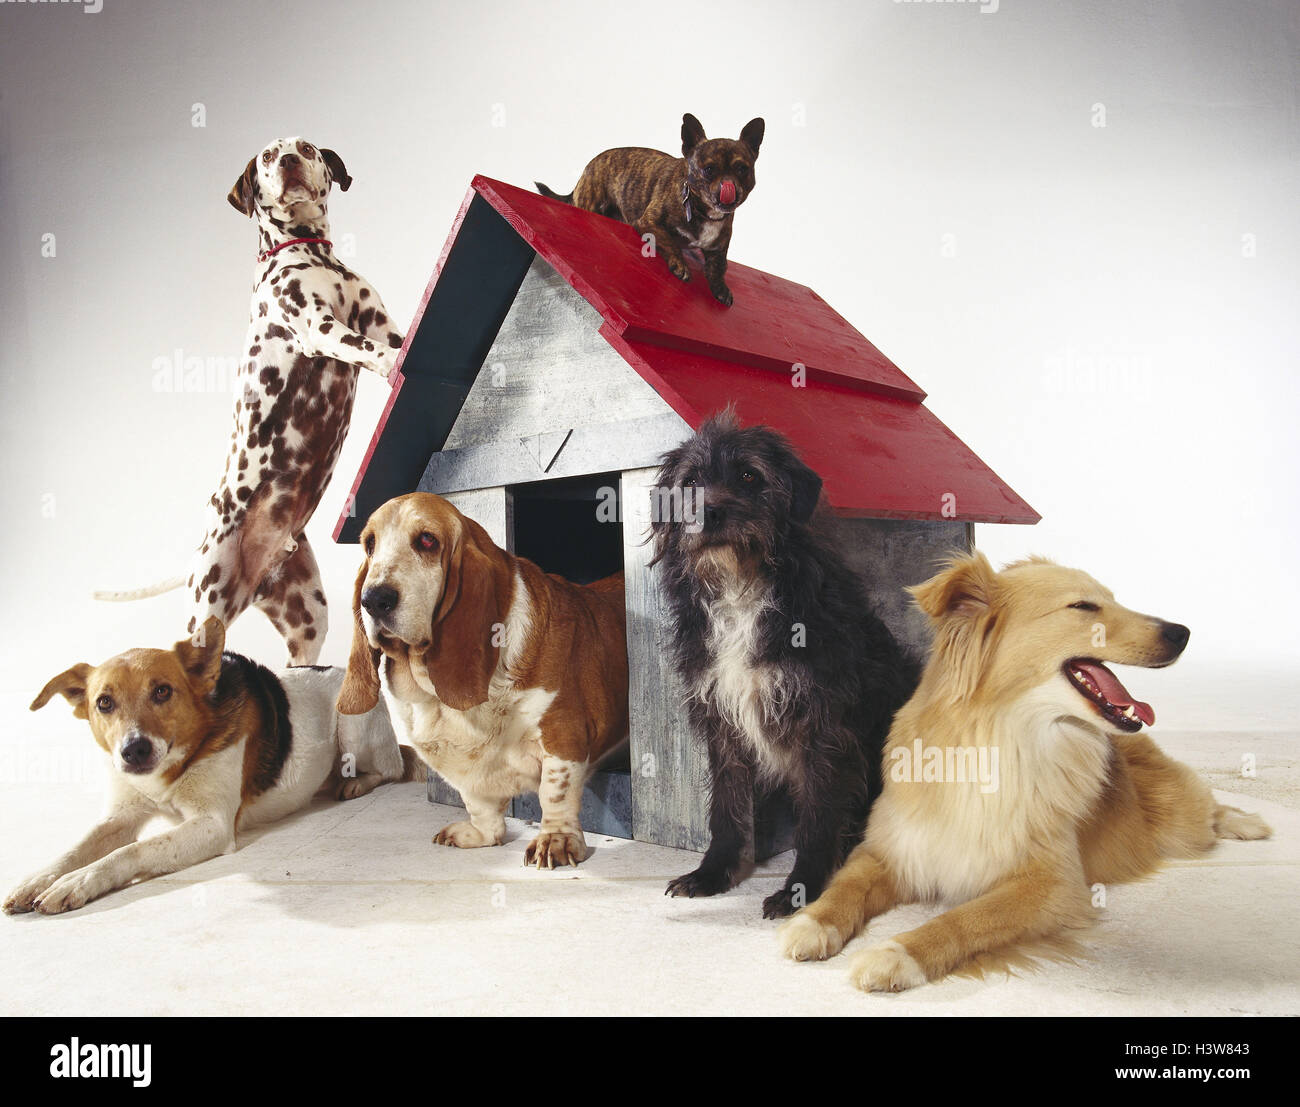 Dogs, different, kennel mammals, doggy, Canidae, pets, dogs, six, differently, pedigree dogs, hybrids, hybrid dogs, - Stock Image